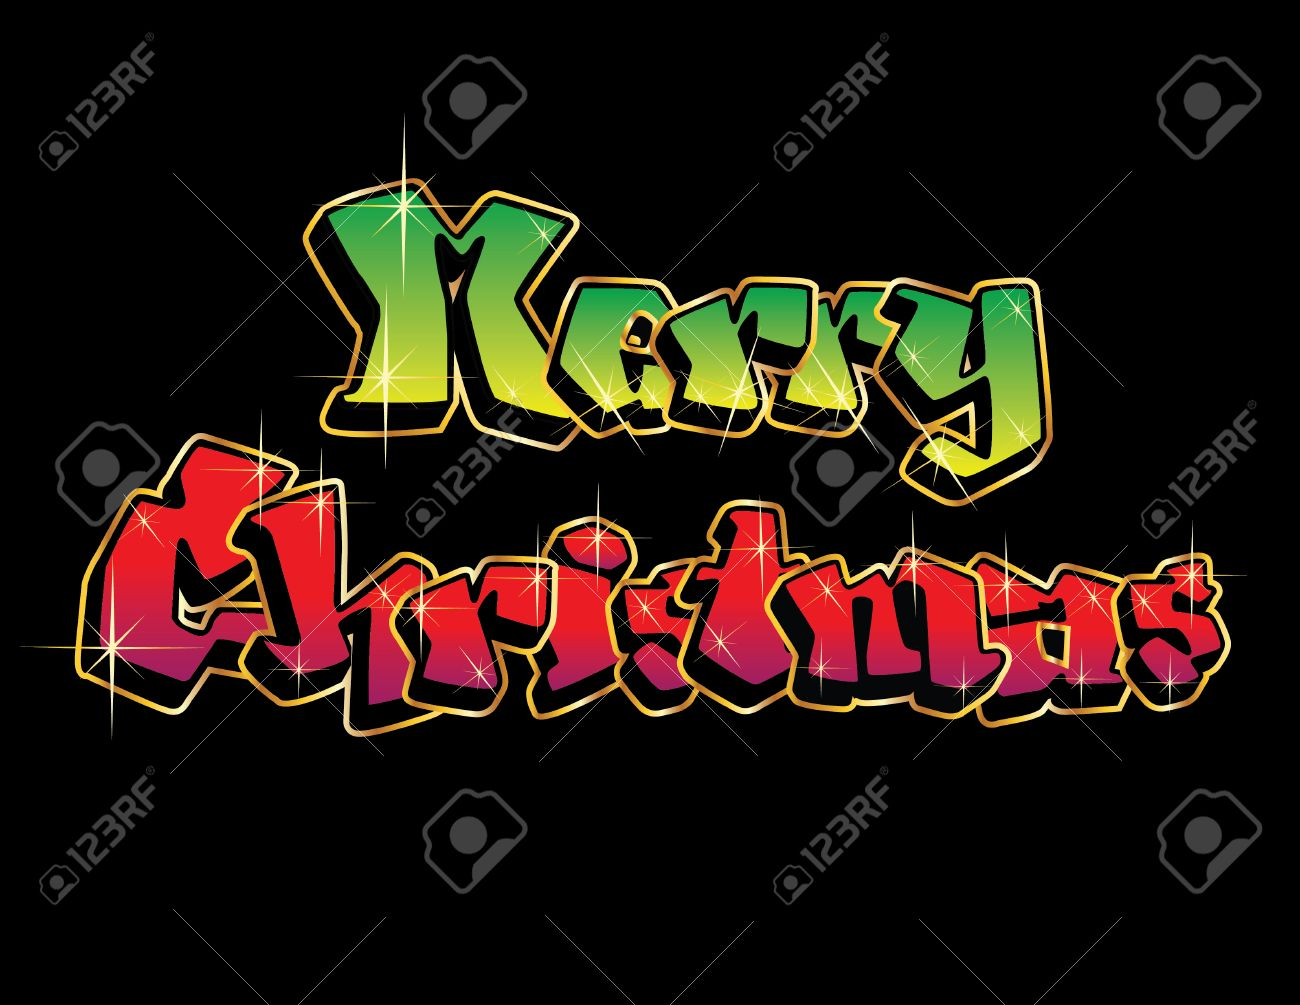 Christmas Graffiti Letters.Twinkling Graffiti Letters Spell Out Merry Christmas Isolated